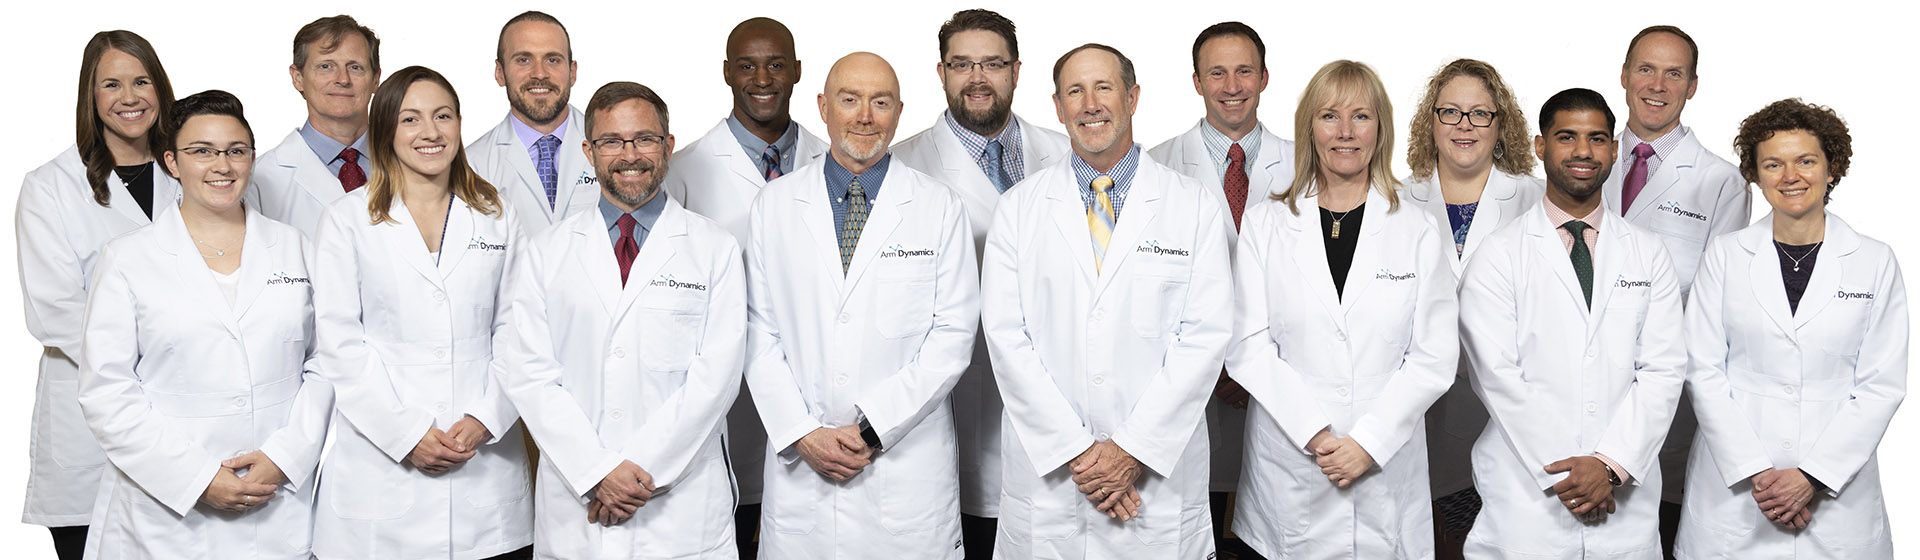 2019 Clinical Team Picture.v1.1